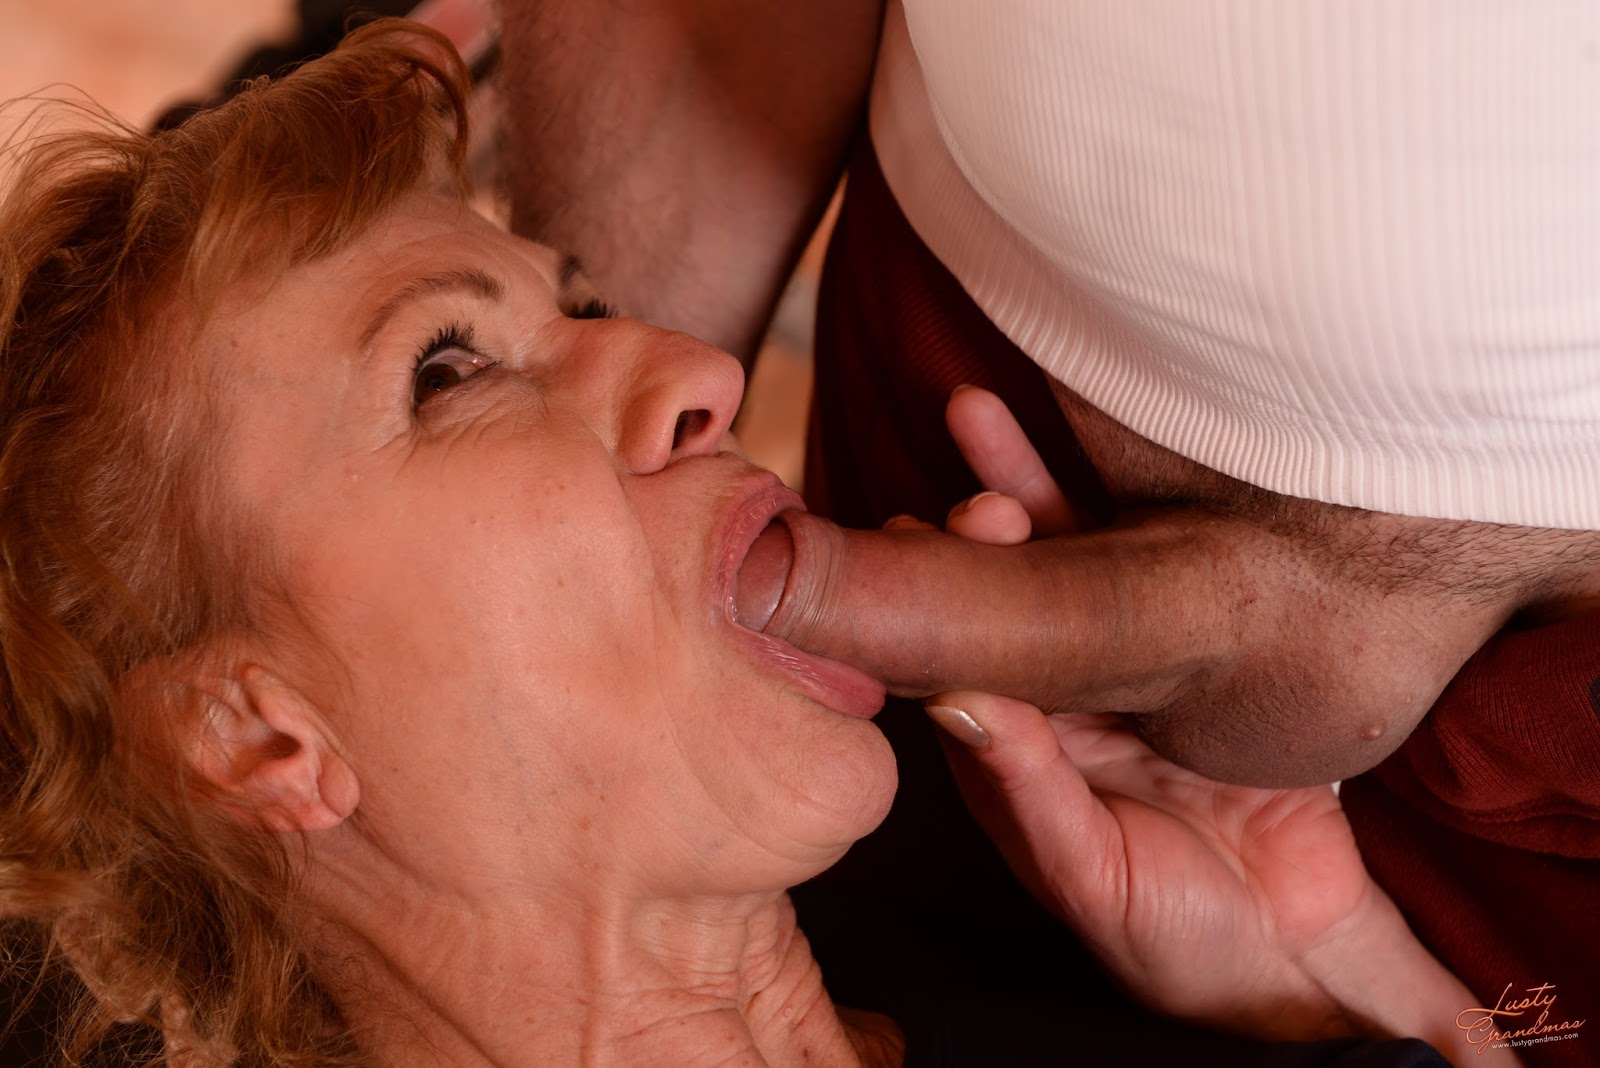 Photo a mature woman and a younger guy in anal pics from bori moms give ass mature women having anal sex with young men